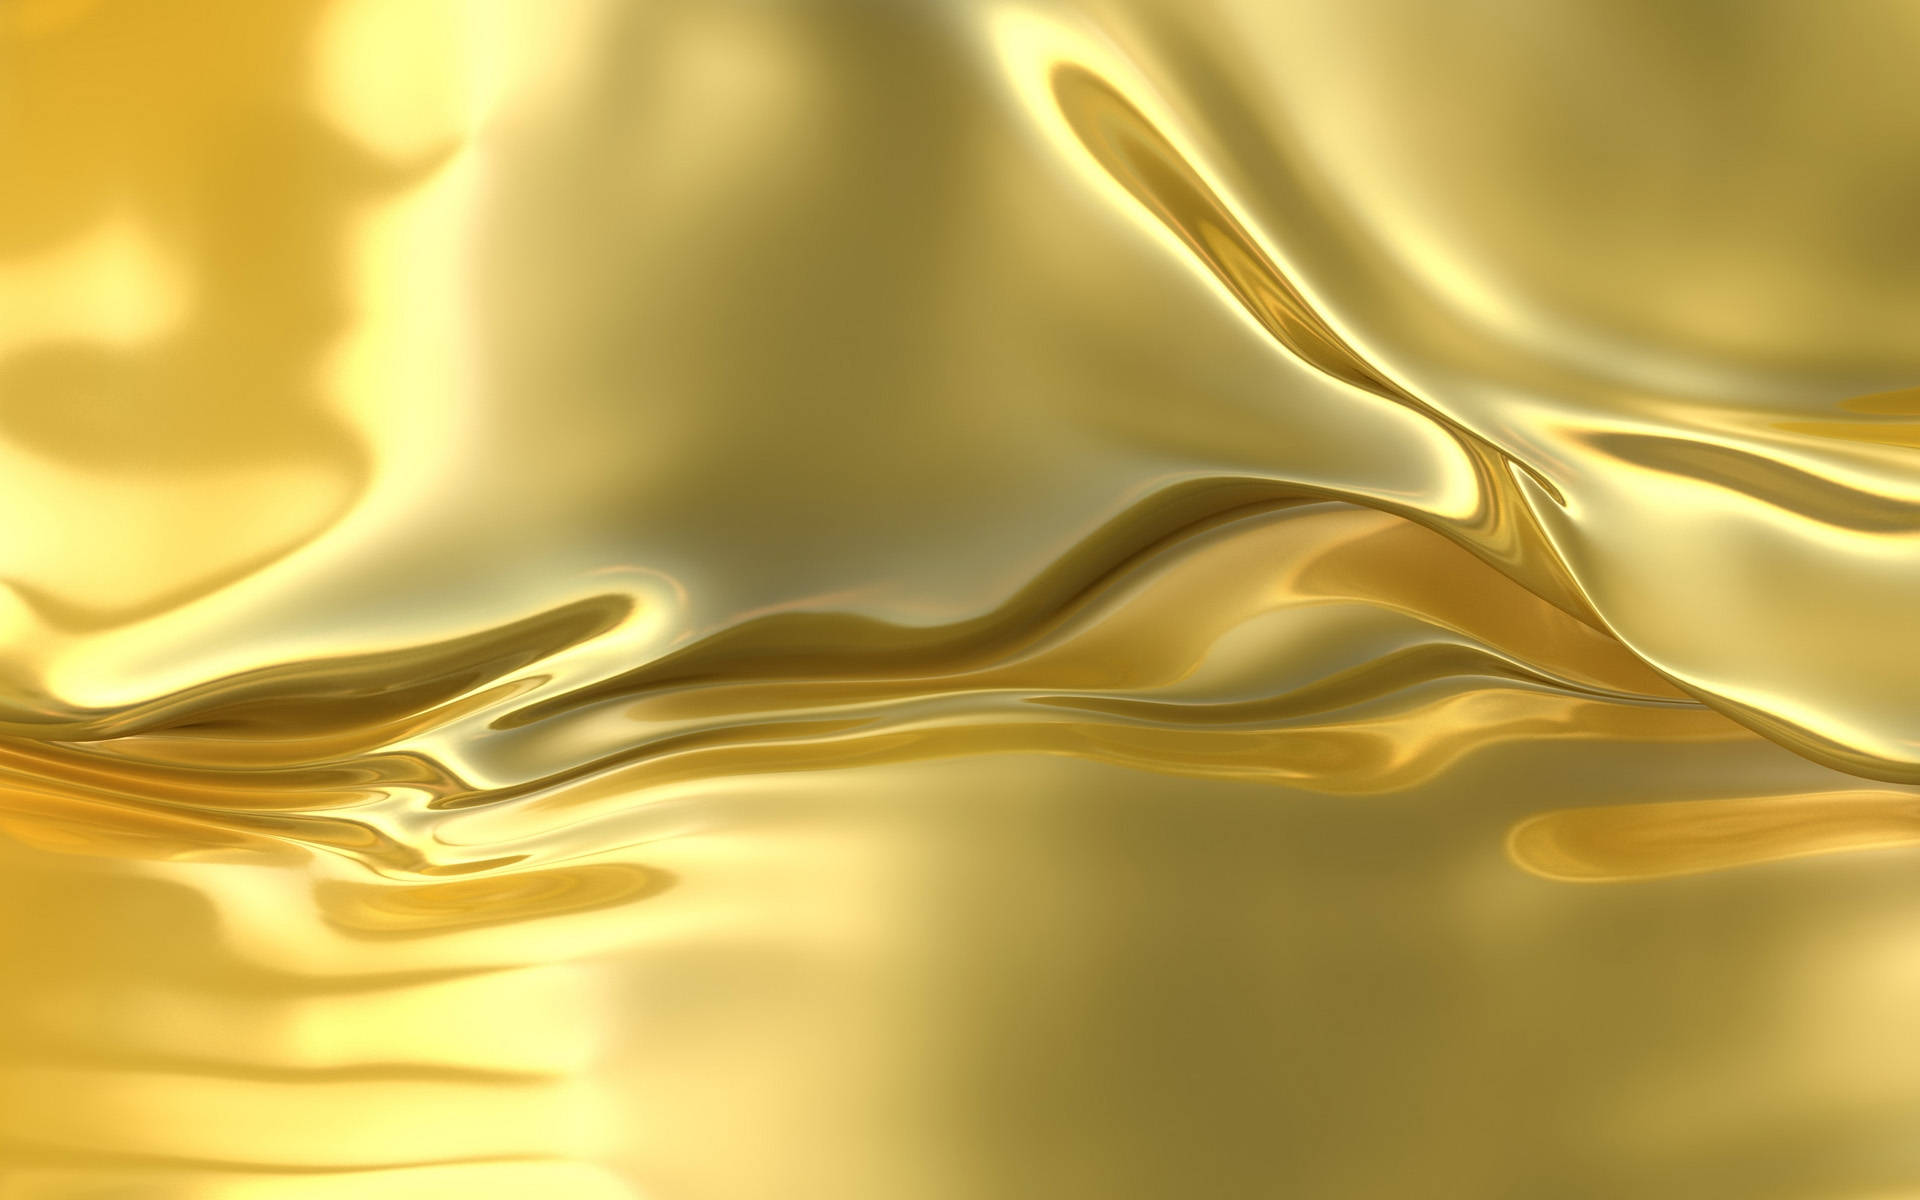 Hd Wallpapers Golden Wallpaper Ouro Abstract Gold Texture 19201200 1920x1200